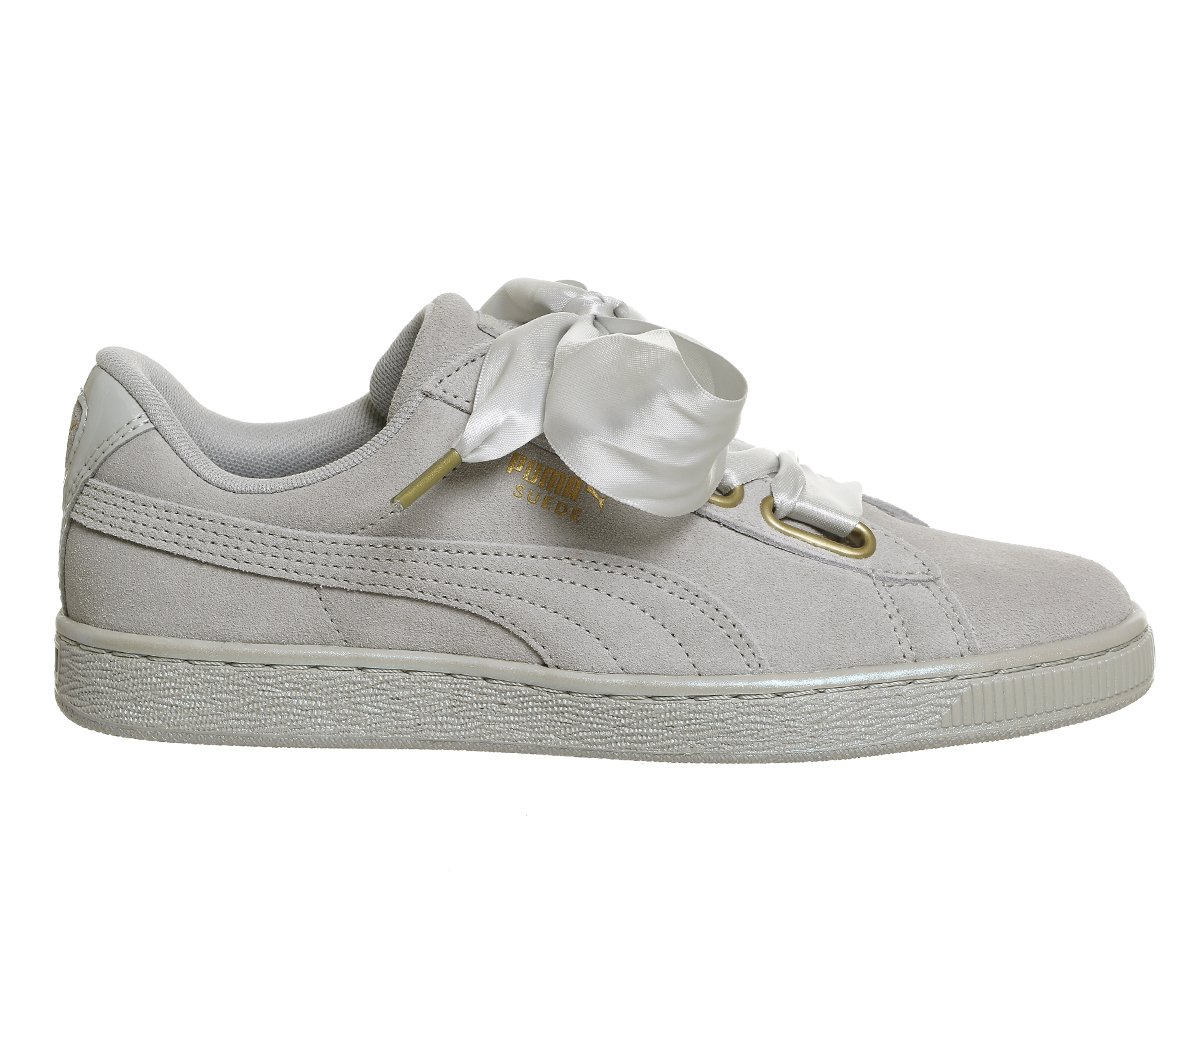 Puma Suede Suede Heart Femme Satin II, Sneakers Sneakers Basses Femme Gris ea3ab0c - latesttechnology.space